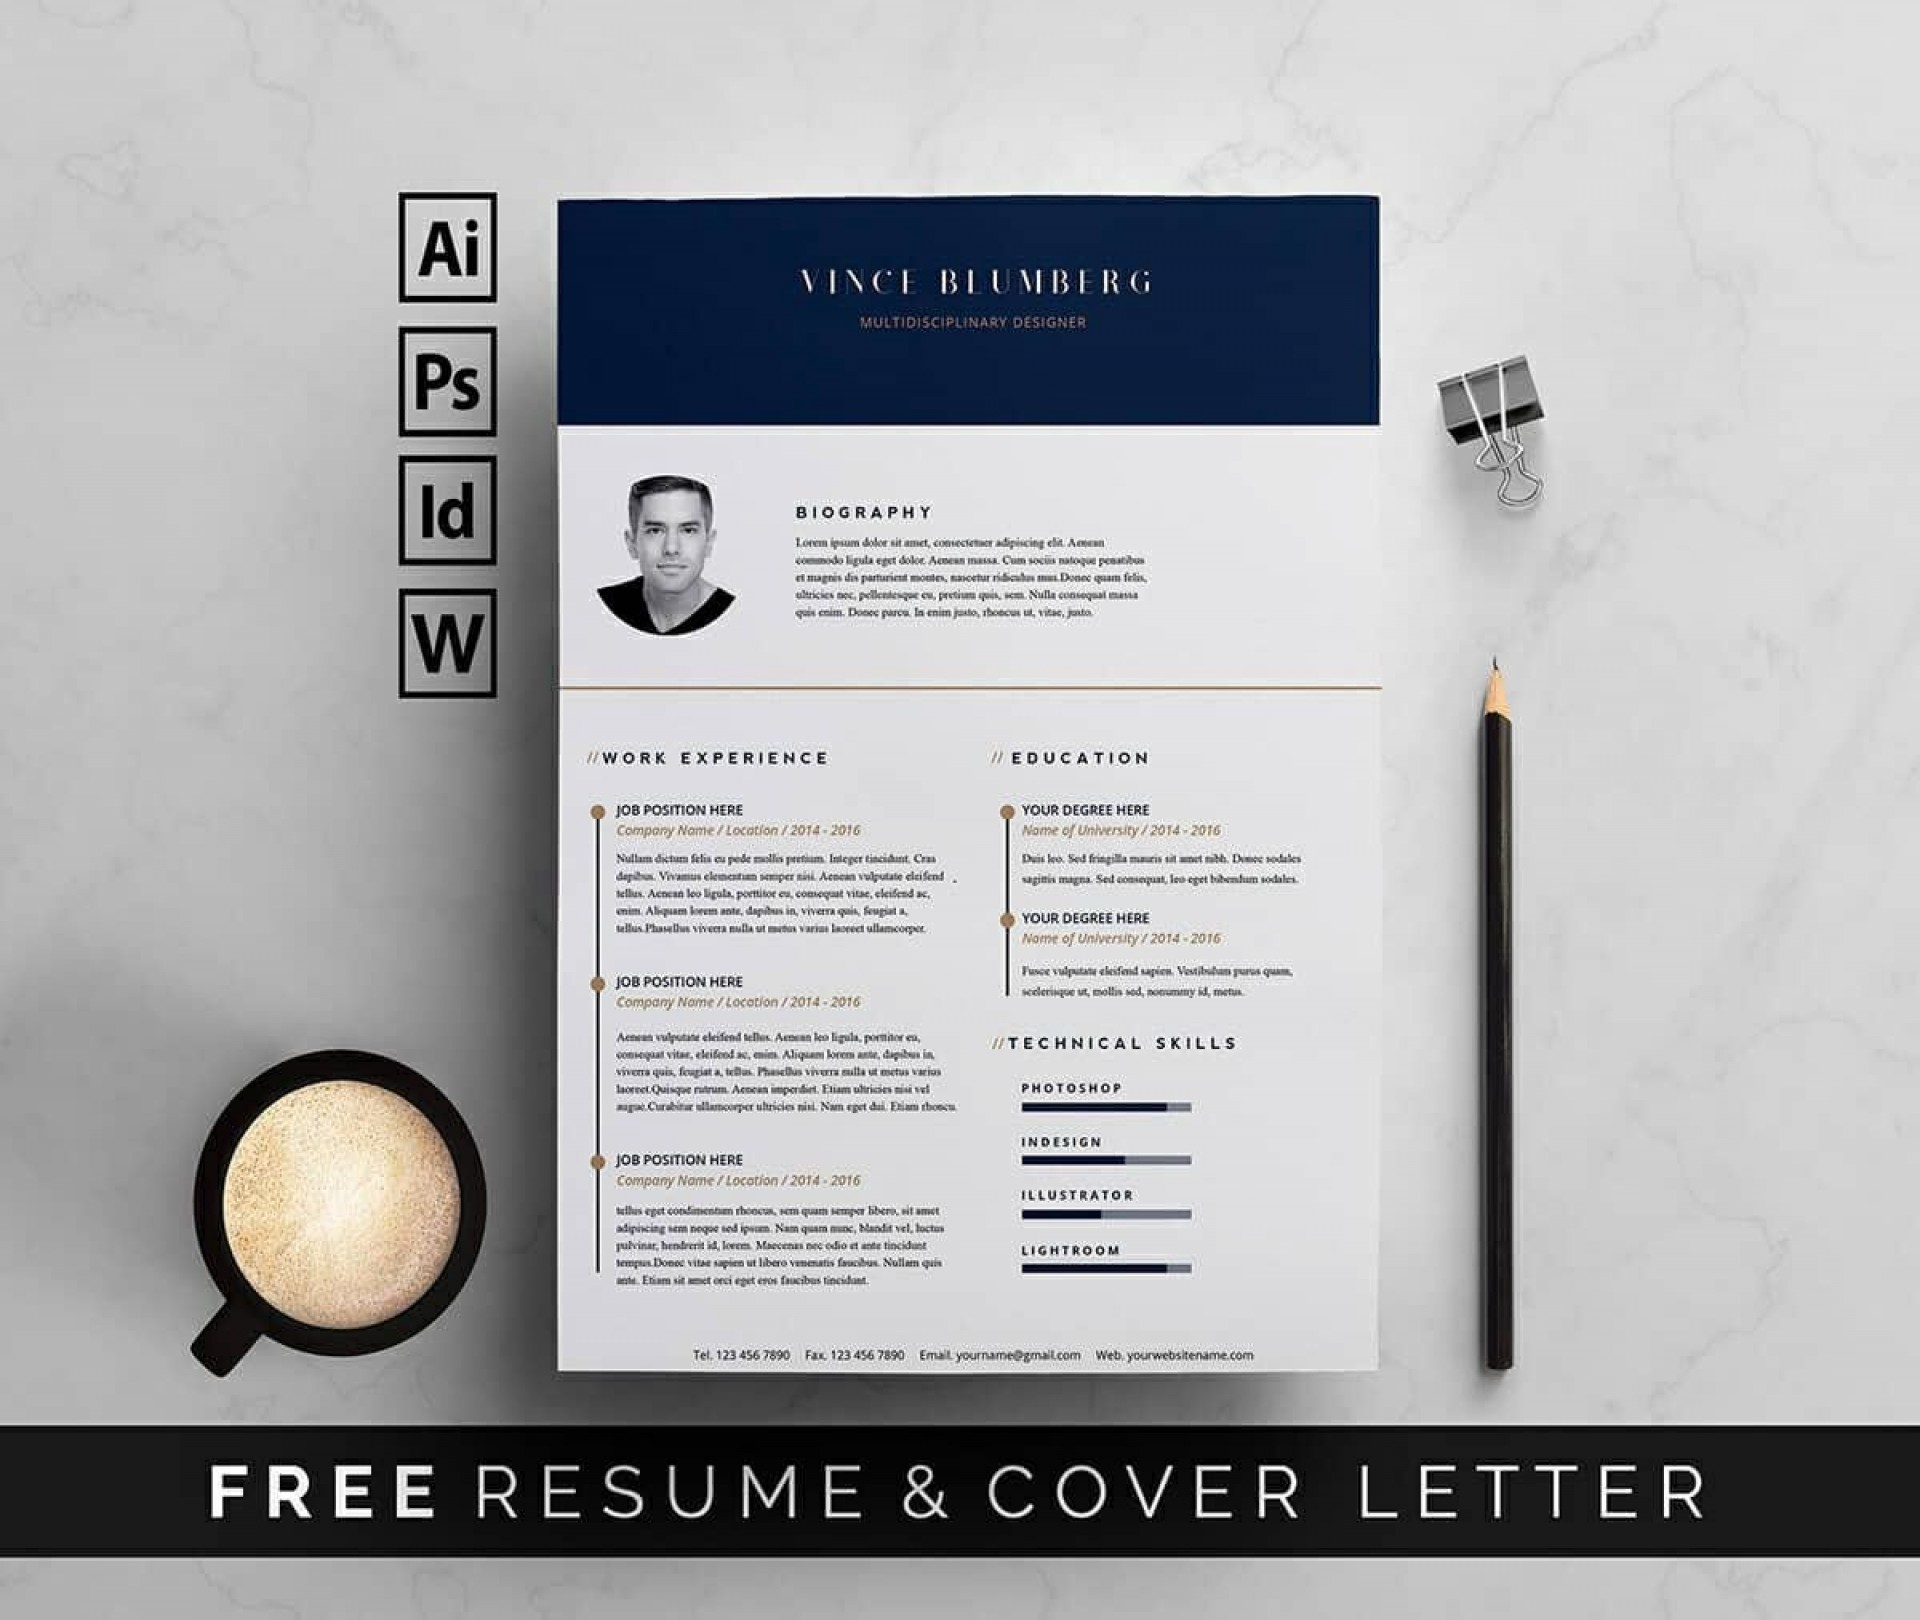 009 Wondrou Free Cv Template Word Sample  Download South Africa In Format Online1920